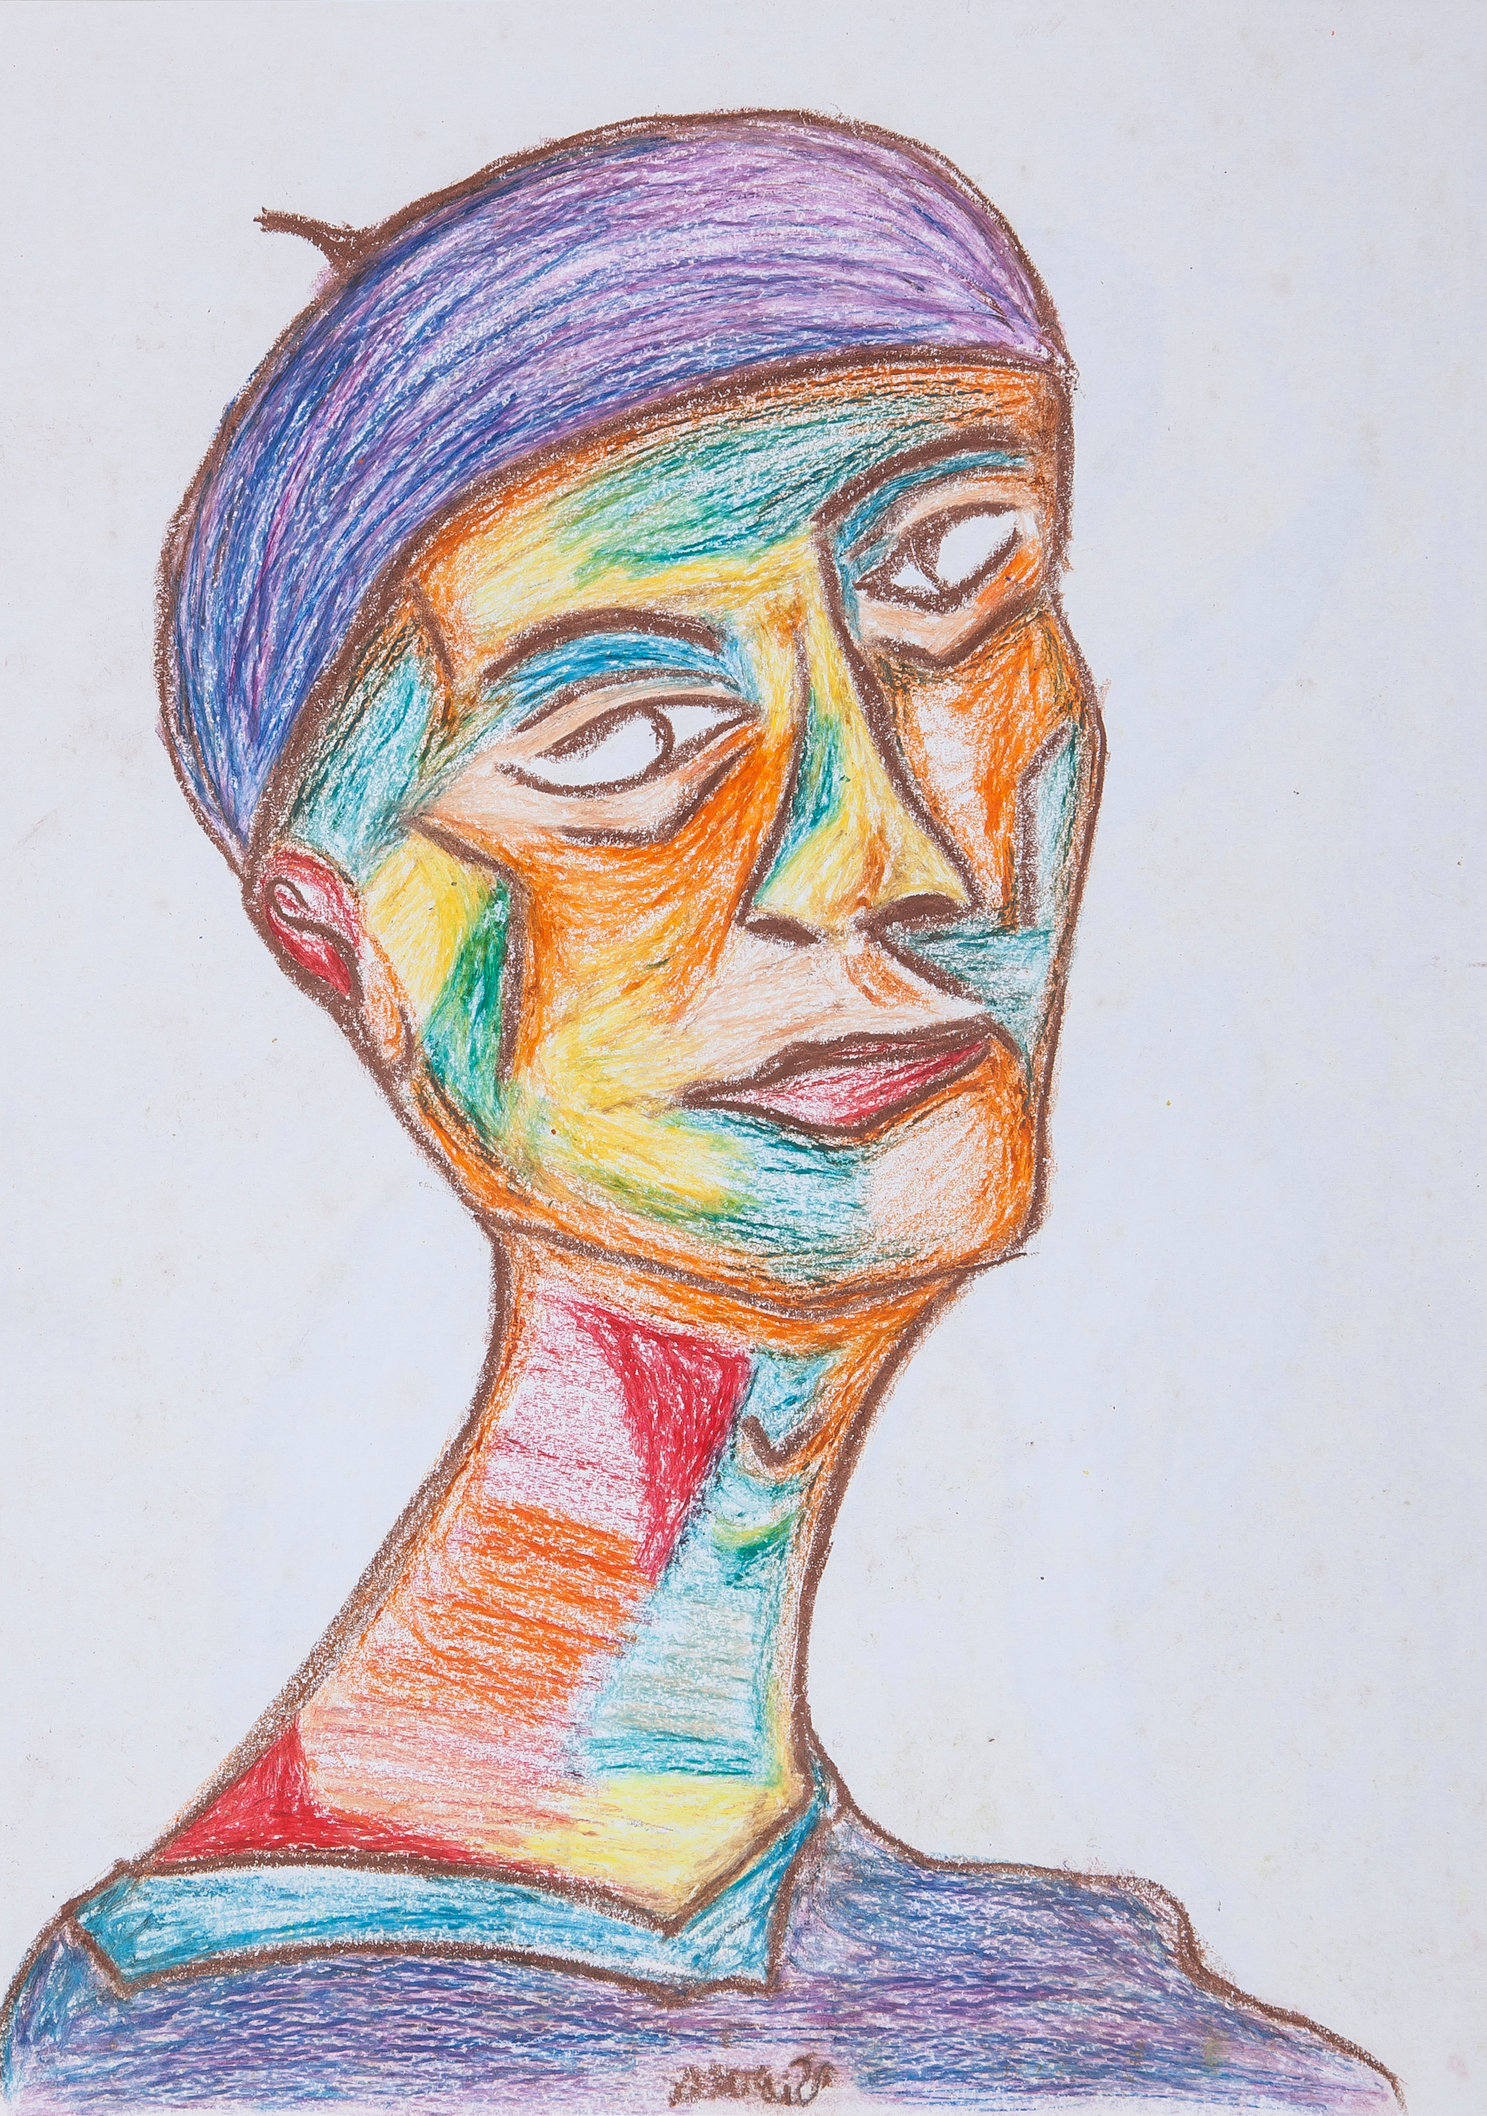 Cubist Style Head of a Woman